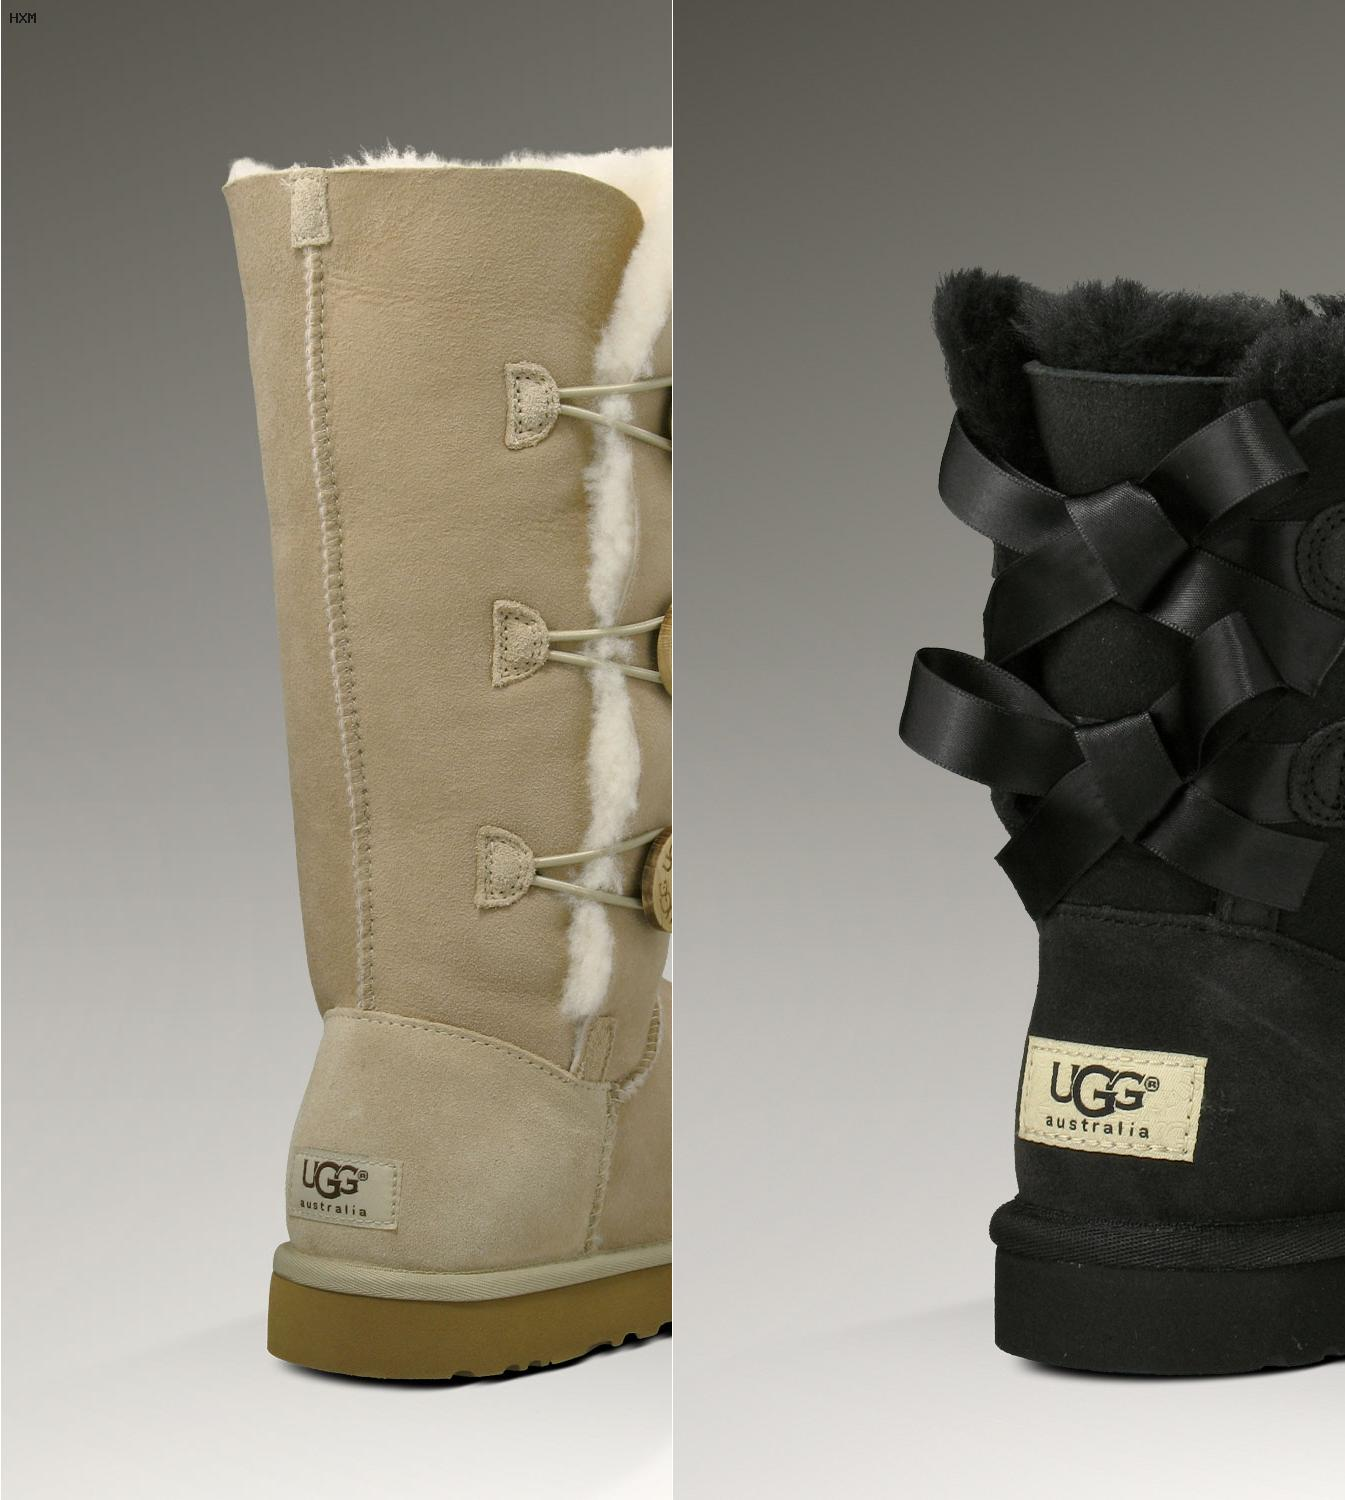 ugg boots perth airport